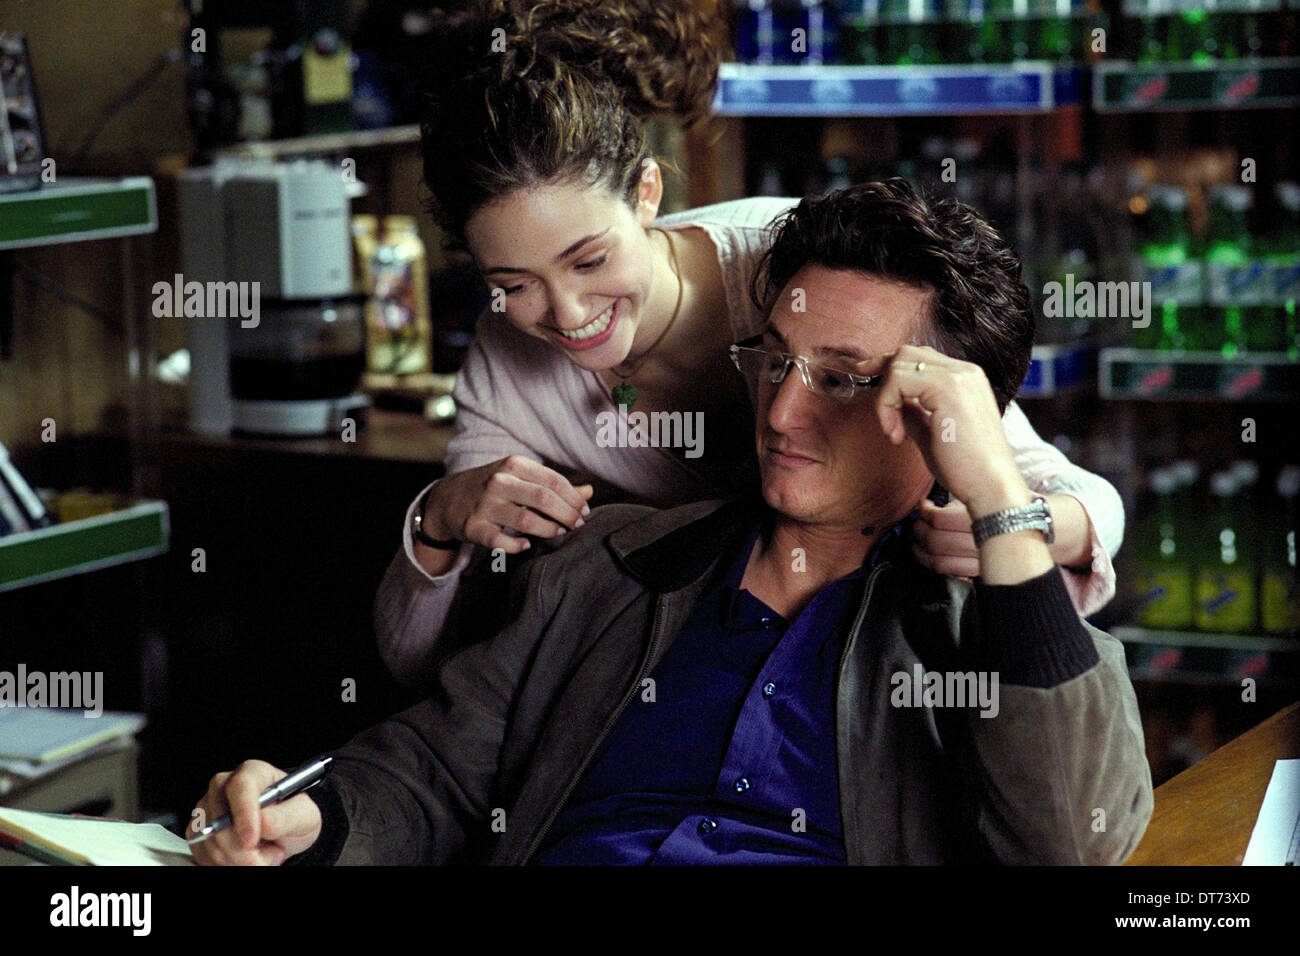 Emmy Rossum Mystic River 2003 High Resolution Stock Photography And Images Alamy